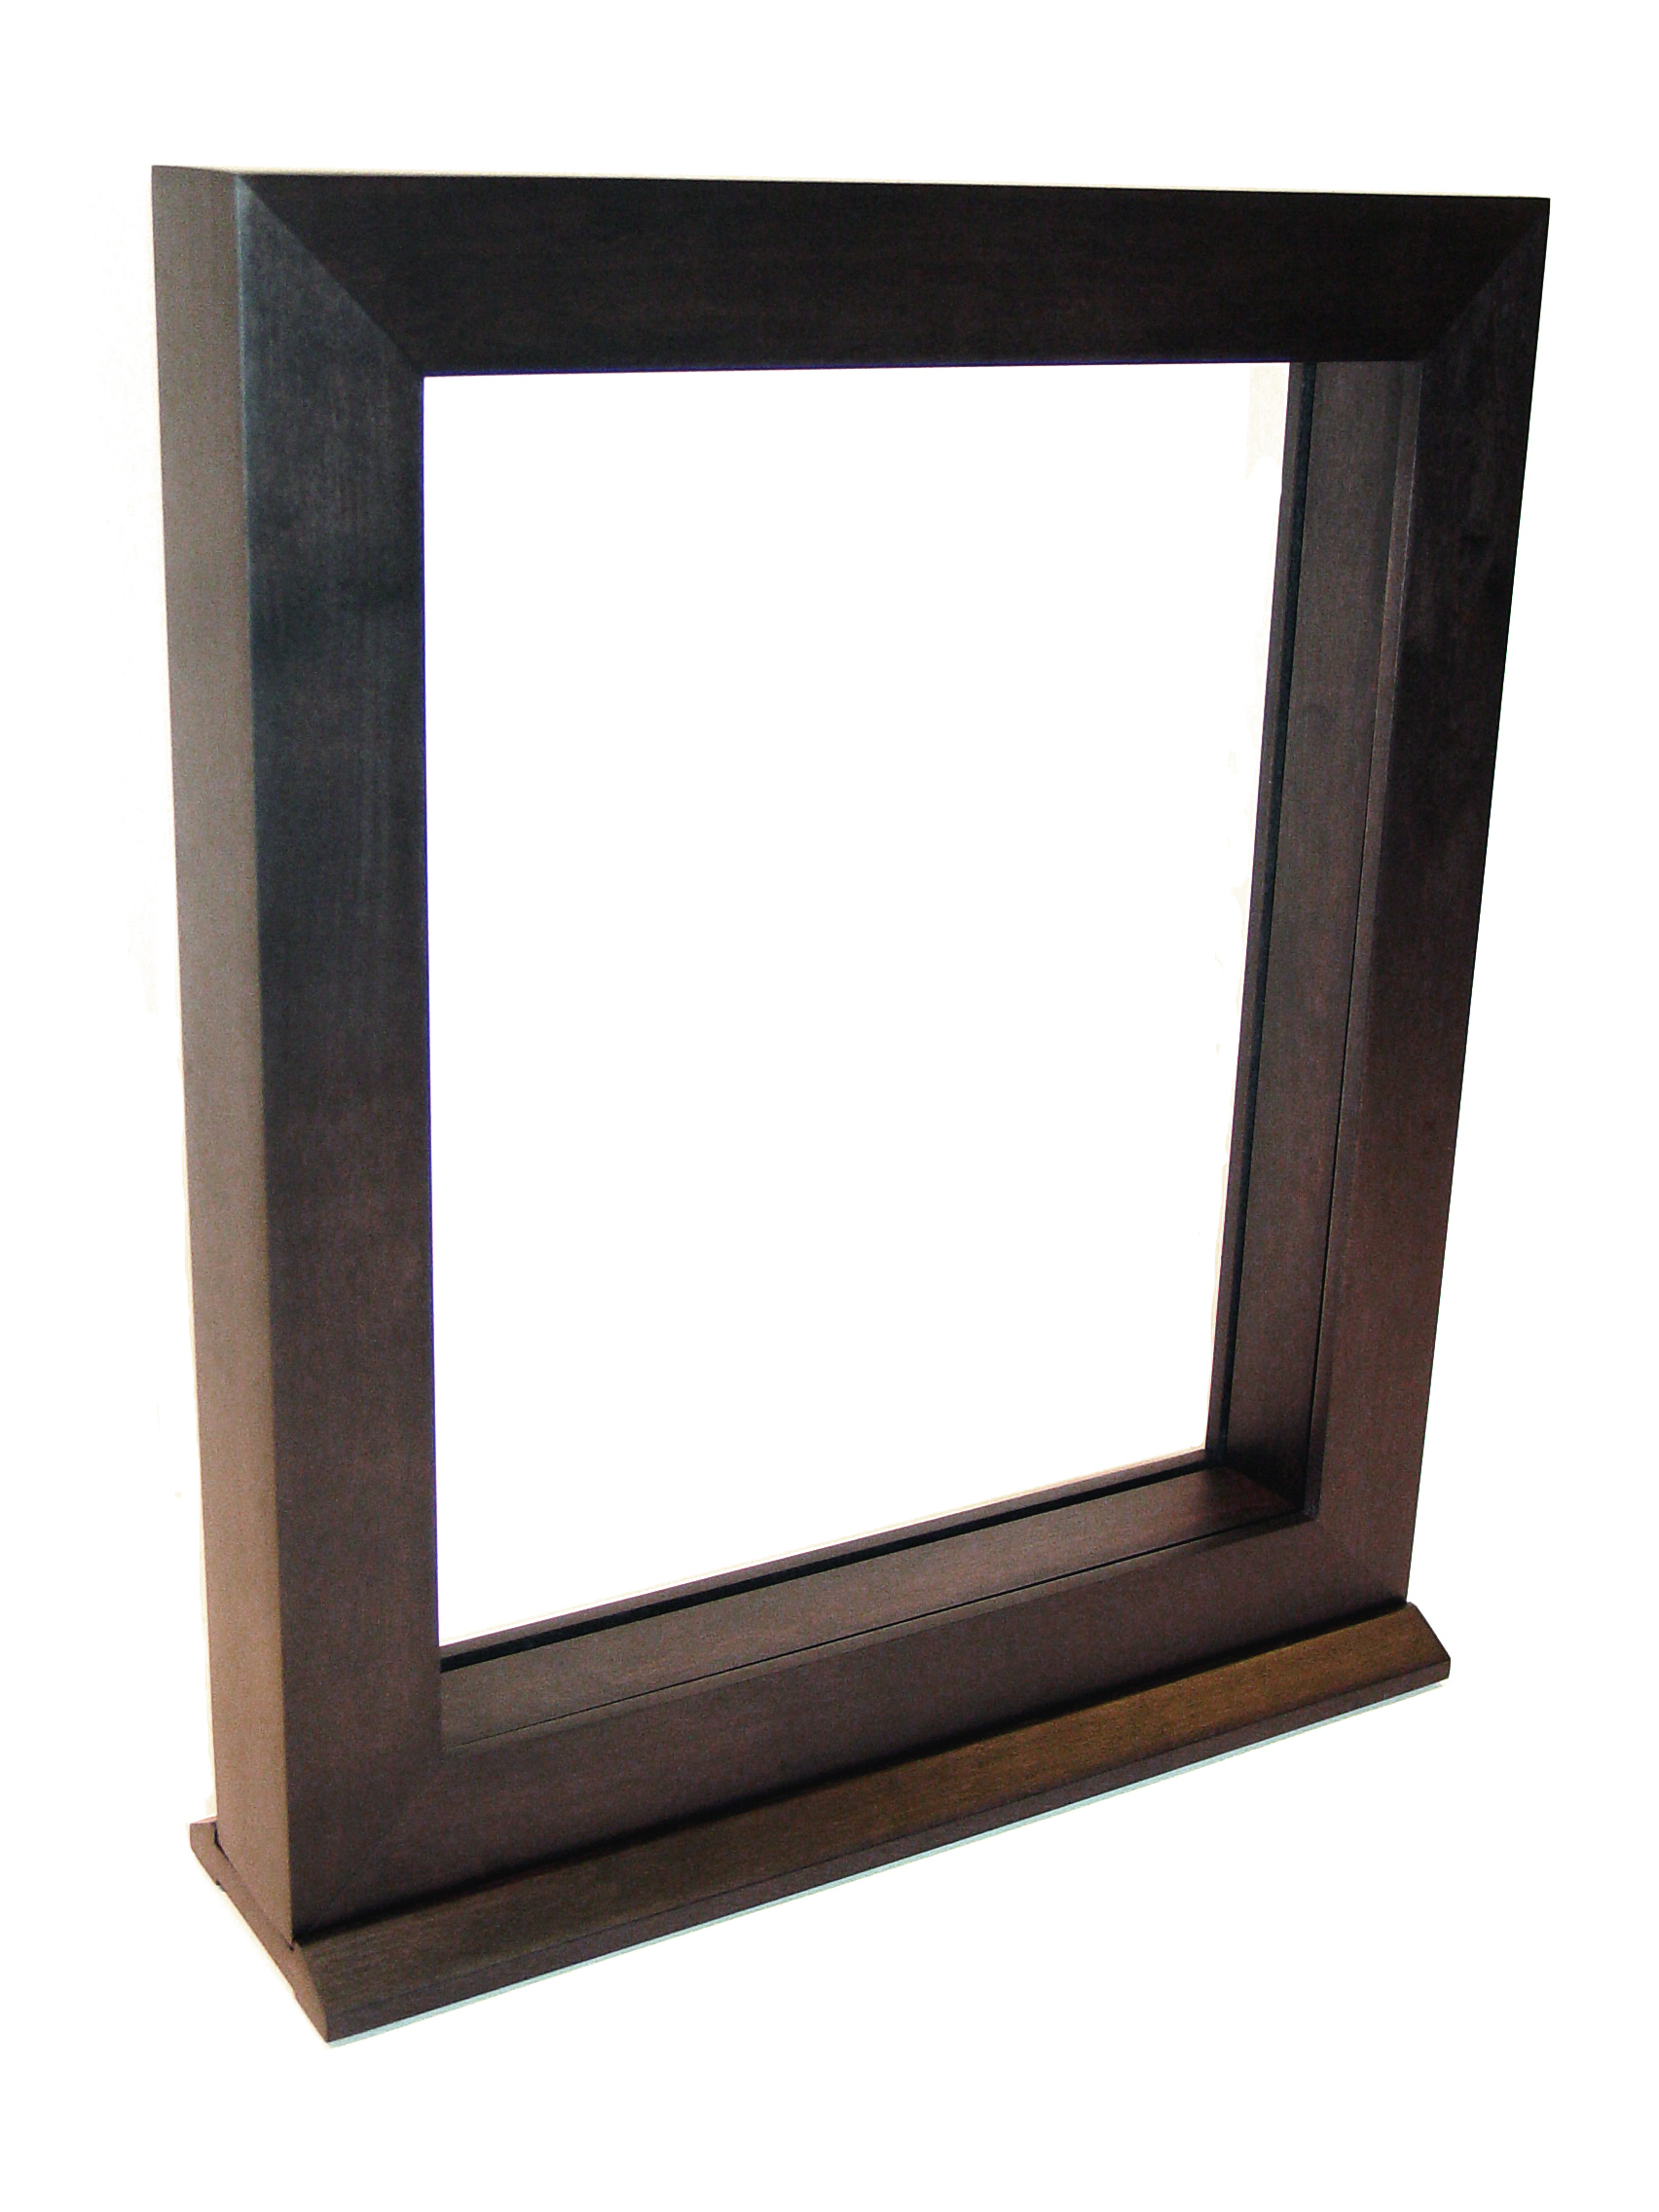 custom framing including double side frames from a street frame